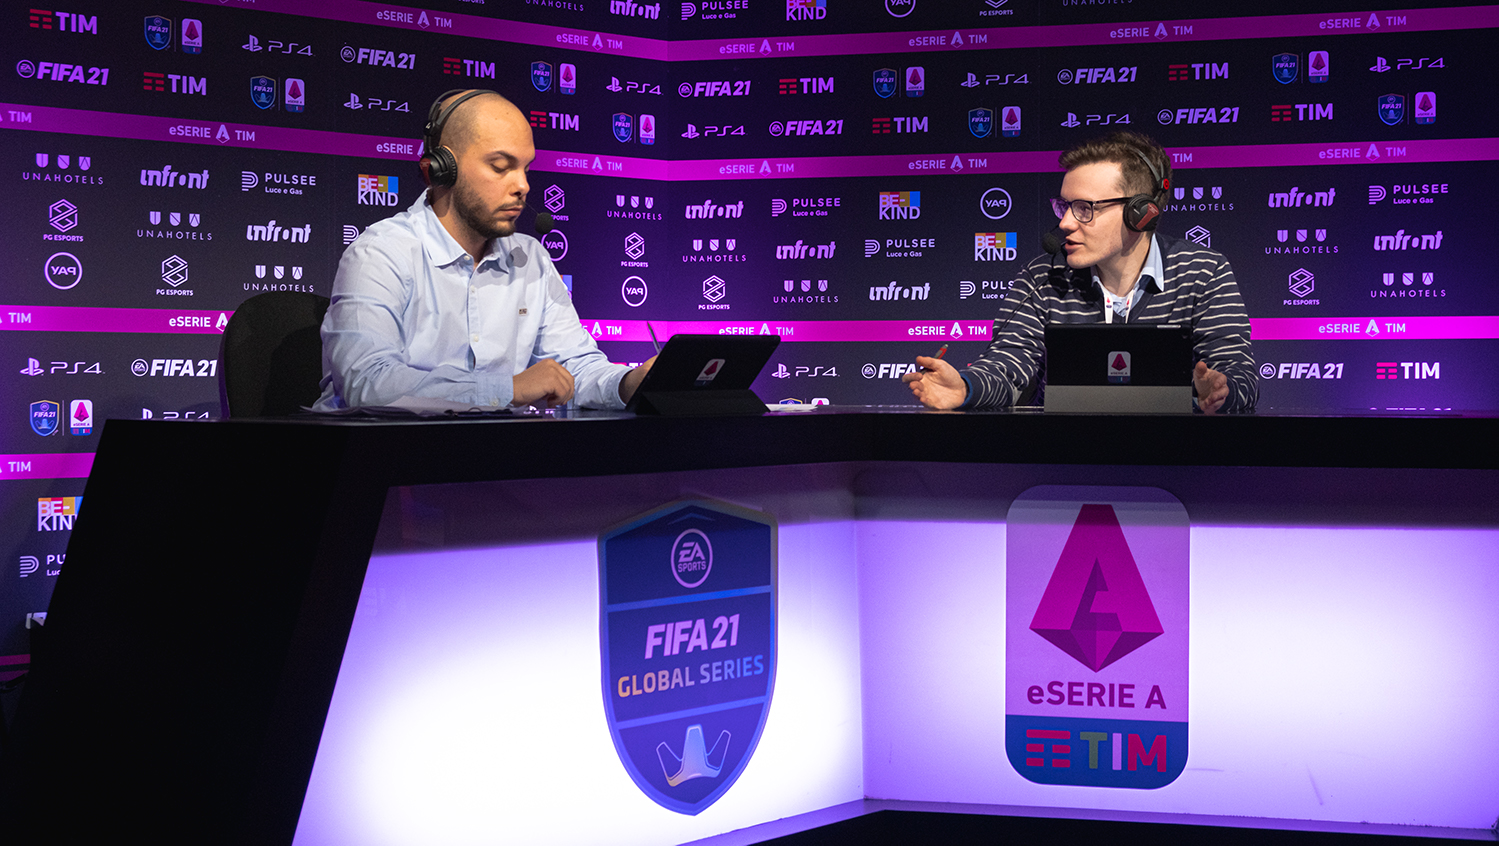 Esports and TV broadcasters have a bright future together